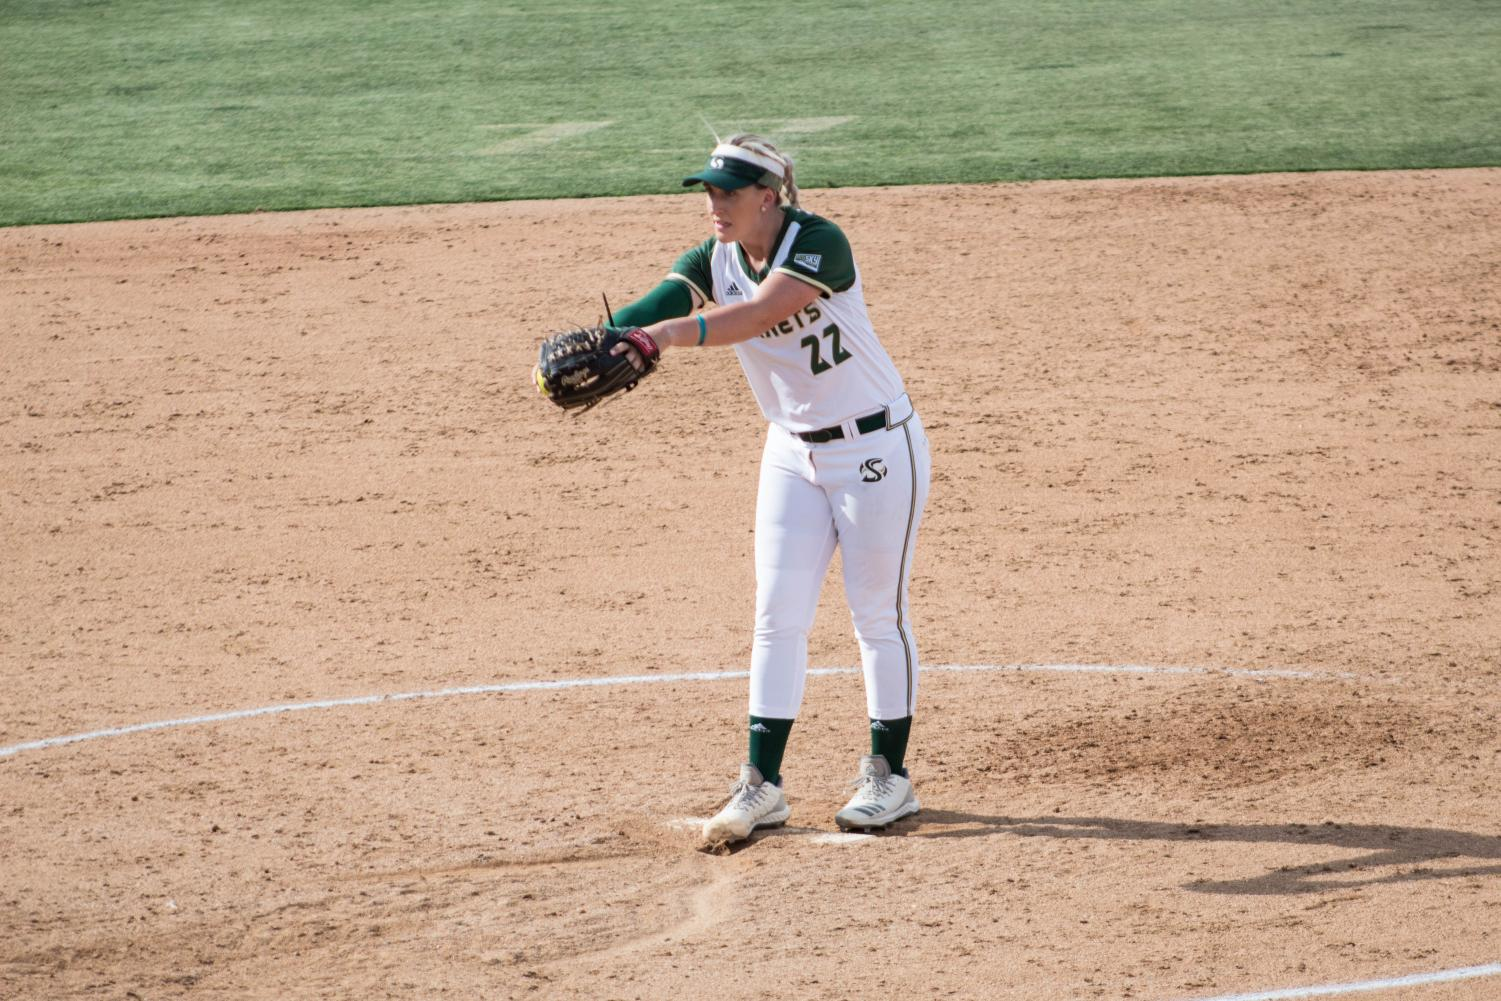 Sac+State+pitcher+Savanna+Corr+winds+her+arm+for+a+pitch+against+UC+Davis+on+Tuesday%2C+April+30.+She+pitched+a+complete+game+in+the+Hornets+6-1+win.